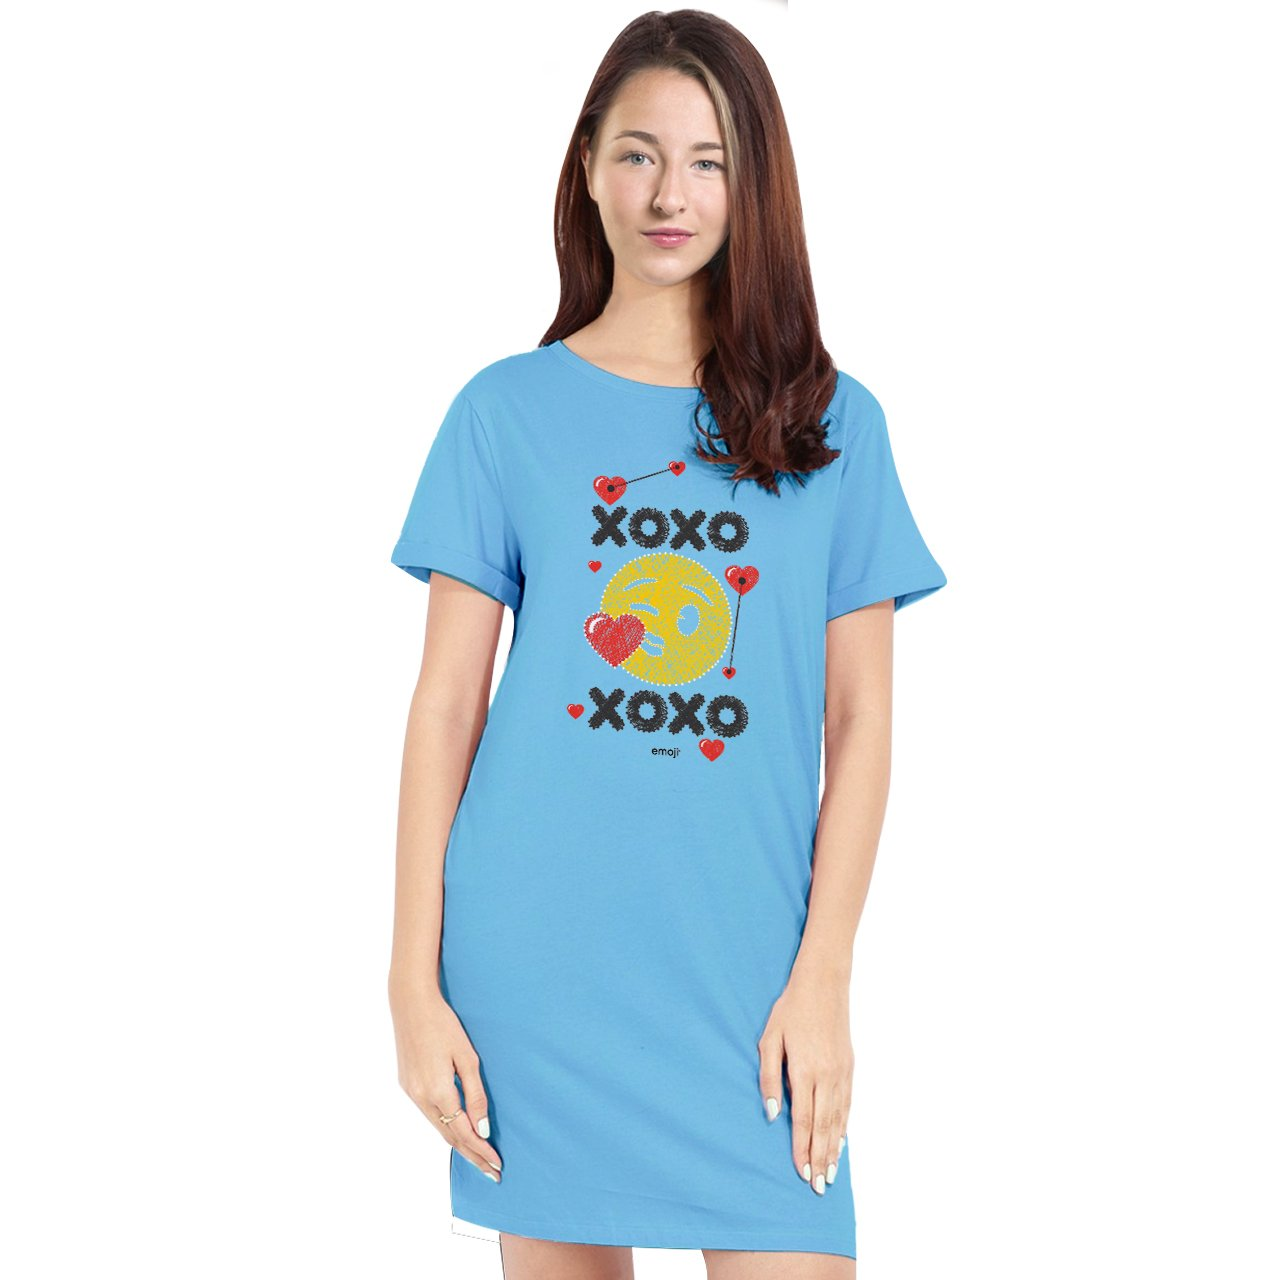 Official Licensed emoji Printed T-Shirt Dress for Women - XOXO